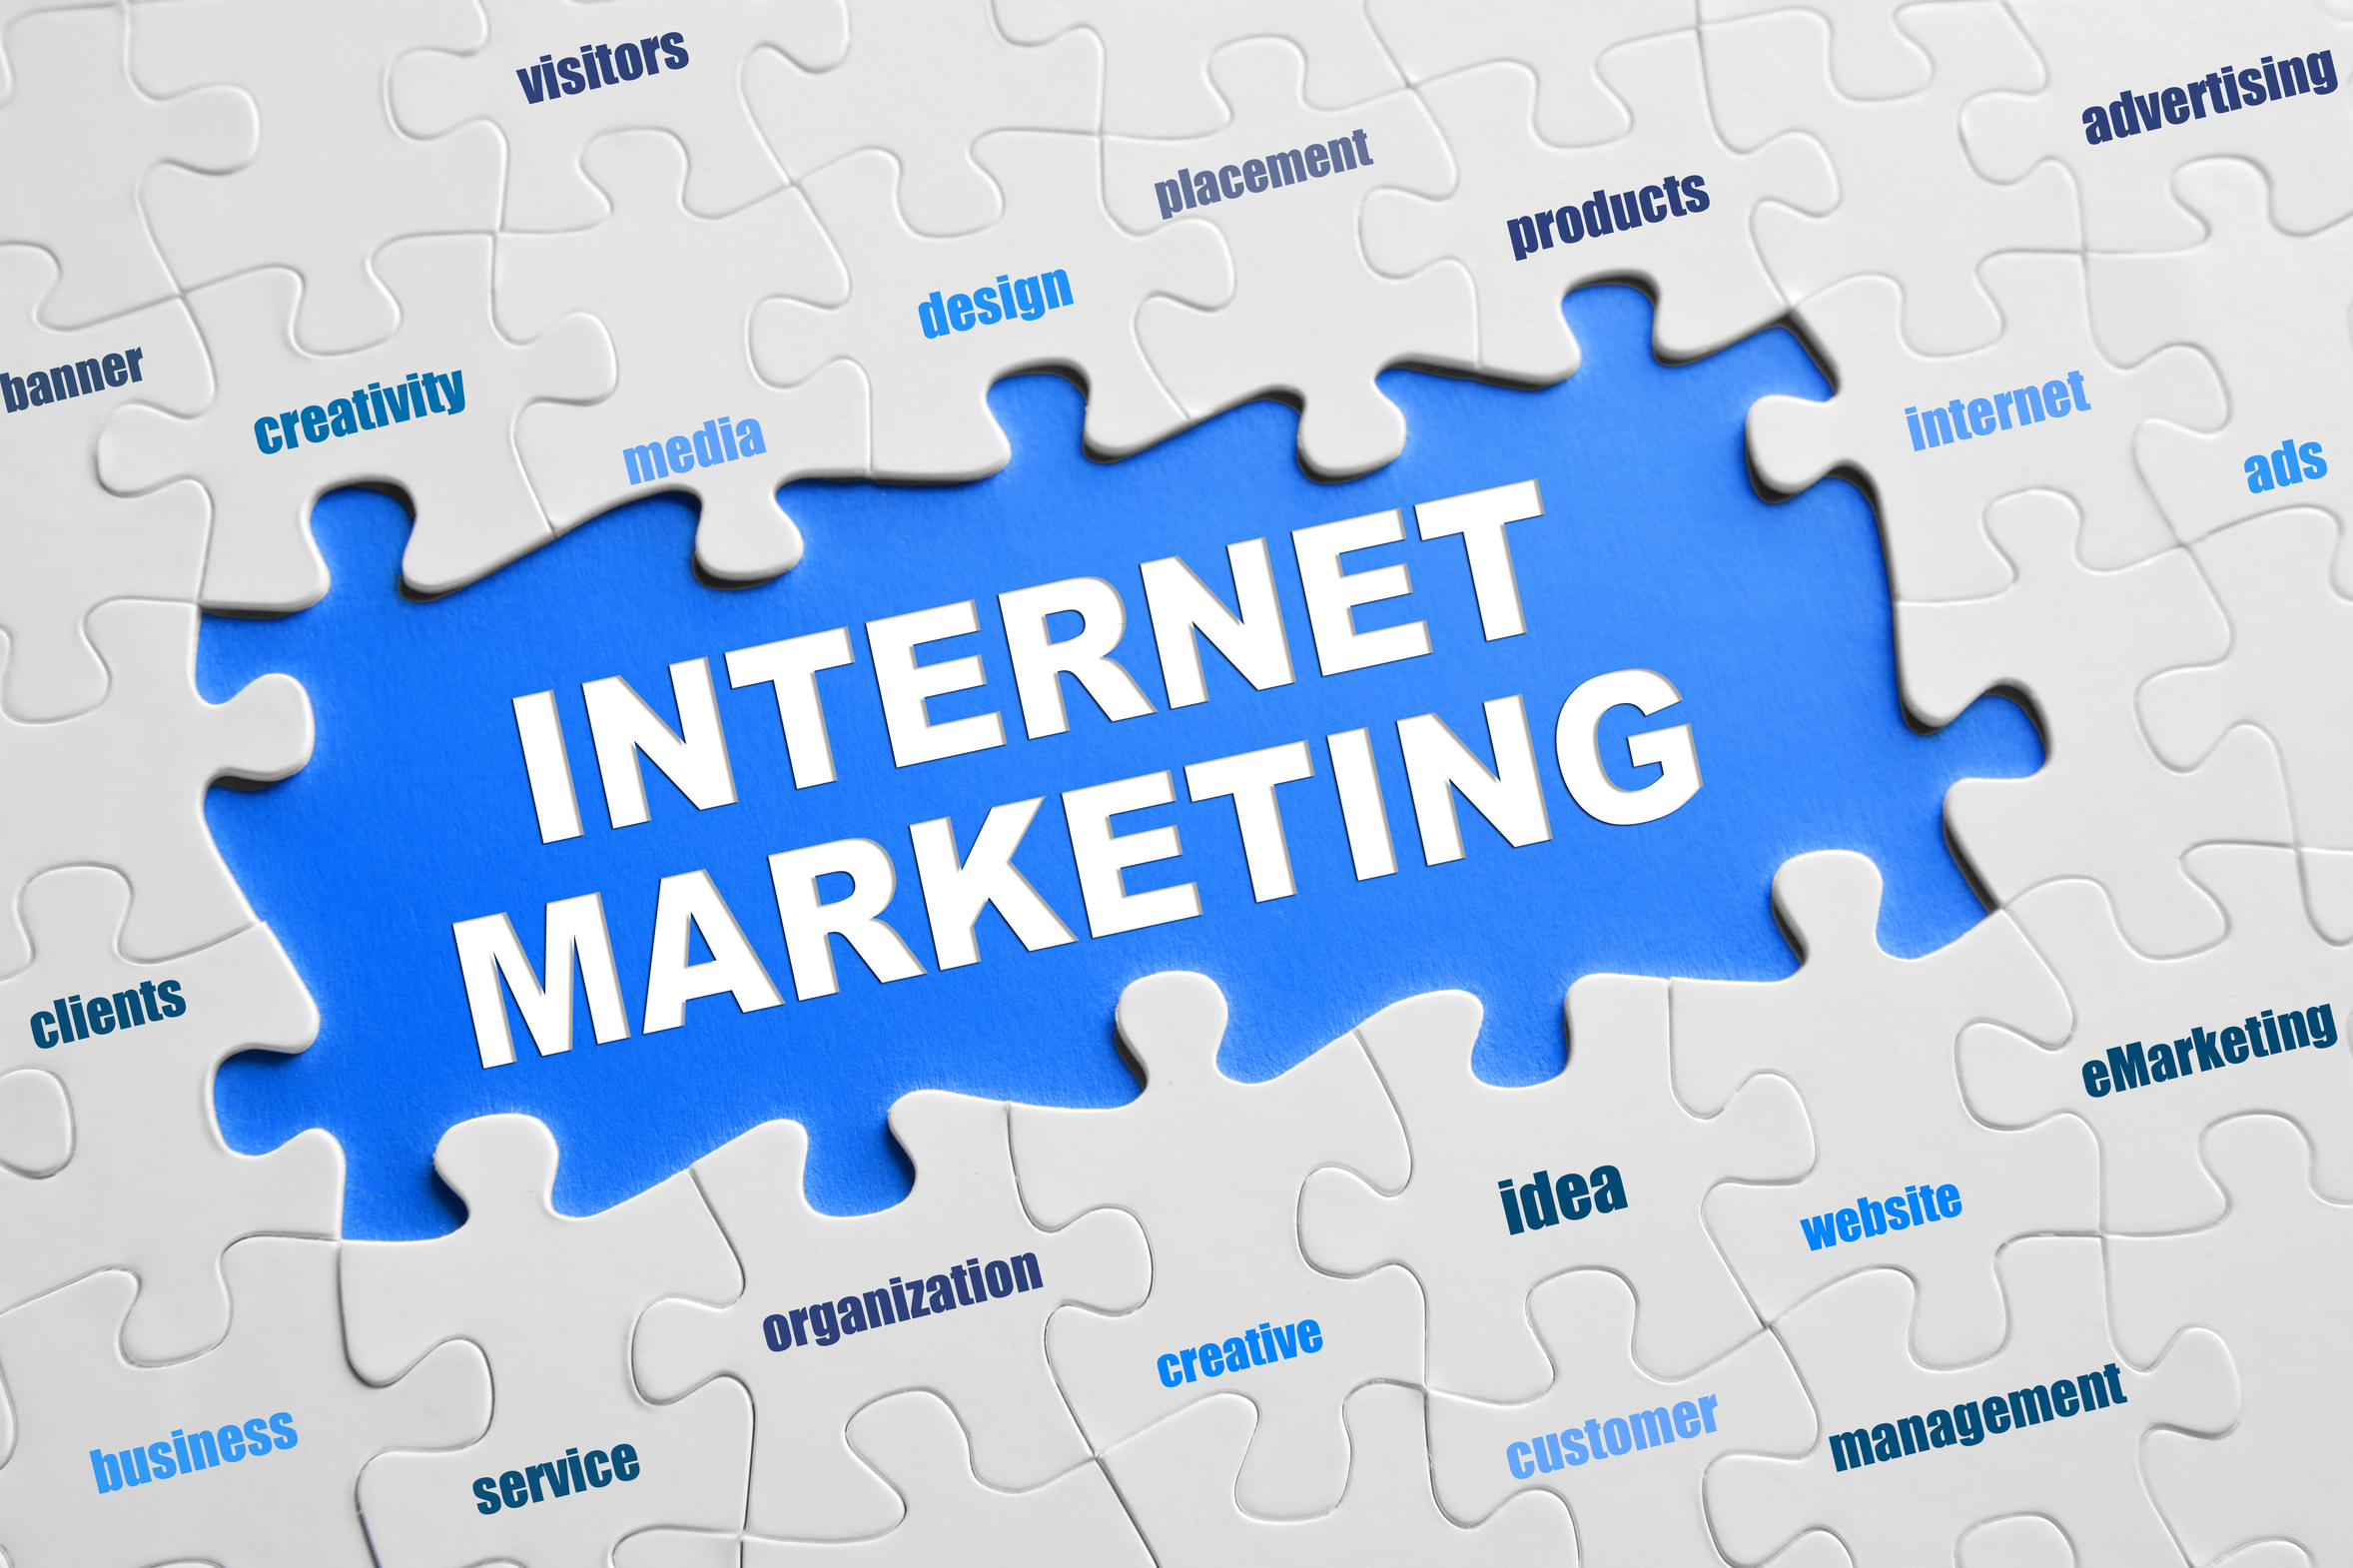 How To Do Effective Internet Marketing With Less Budget - Image 1